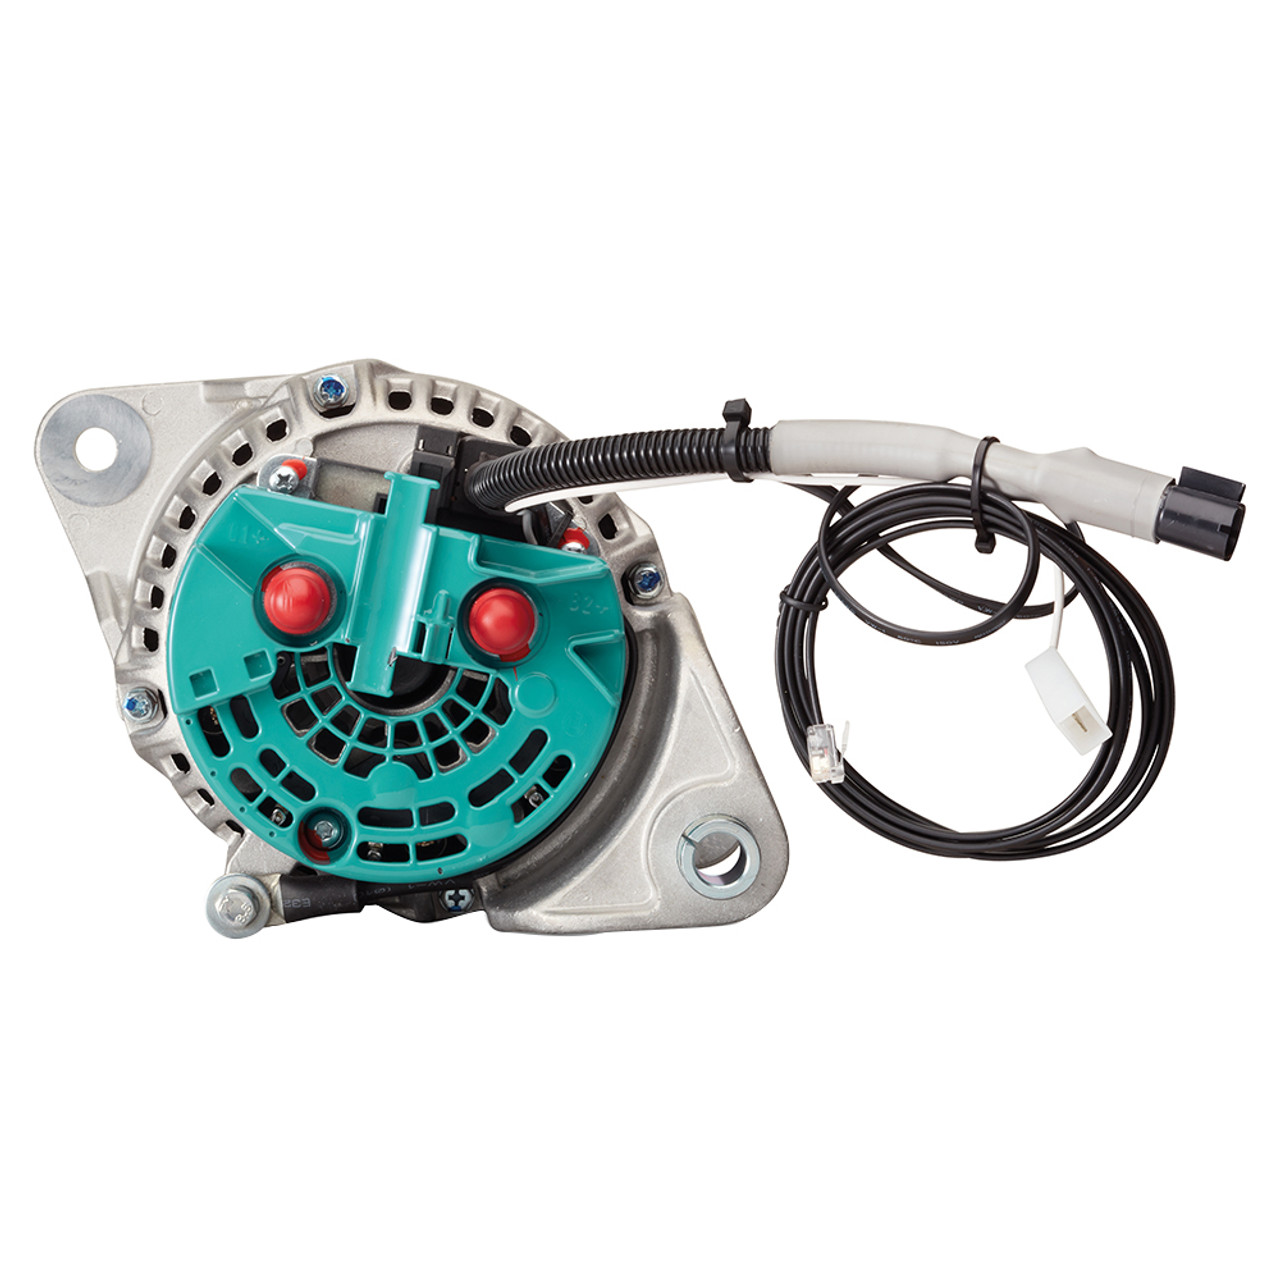 small resolution of  mastervolt alpha compact alternator 28 80 volvo penta with pulley 8 ribs